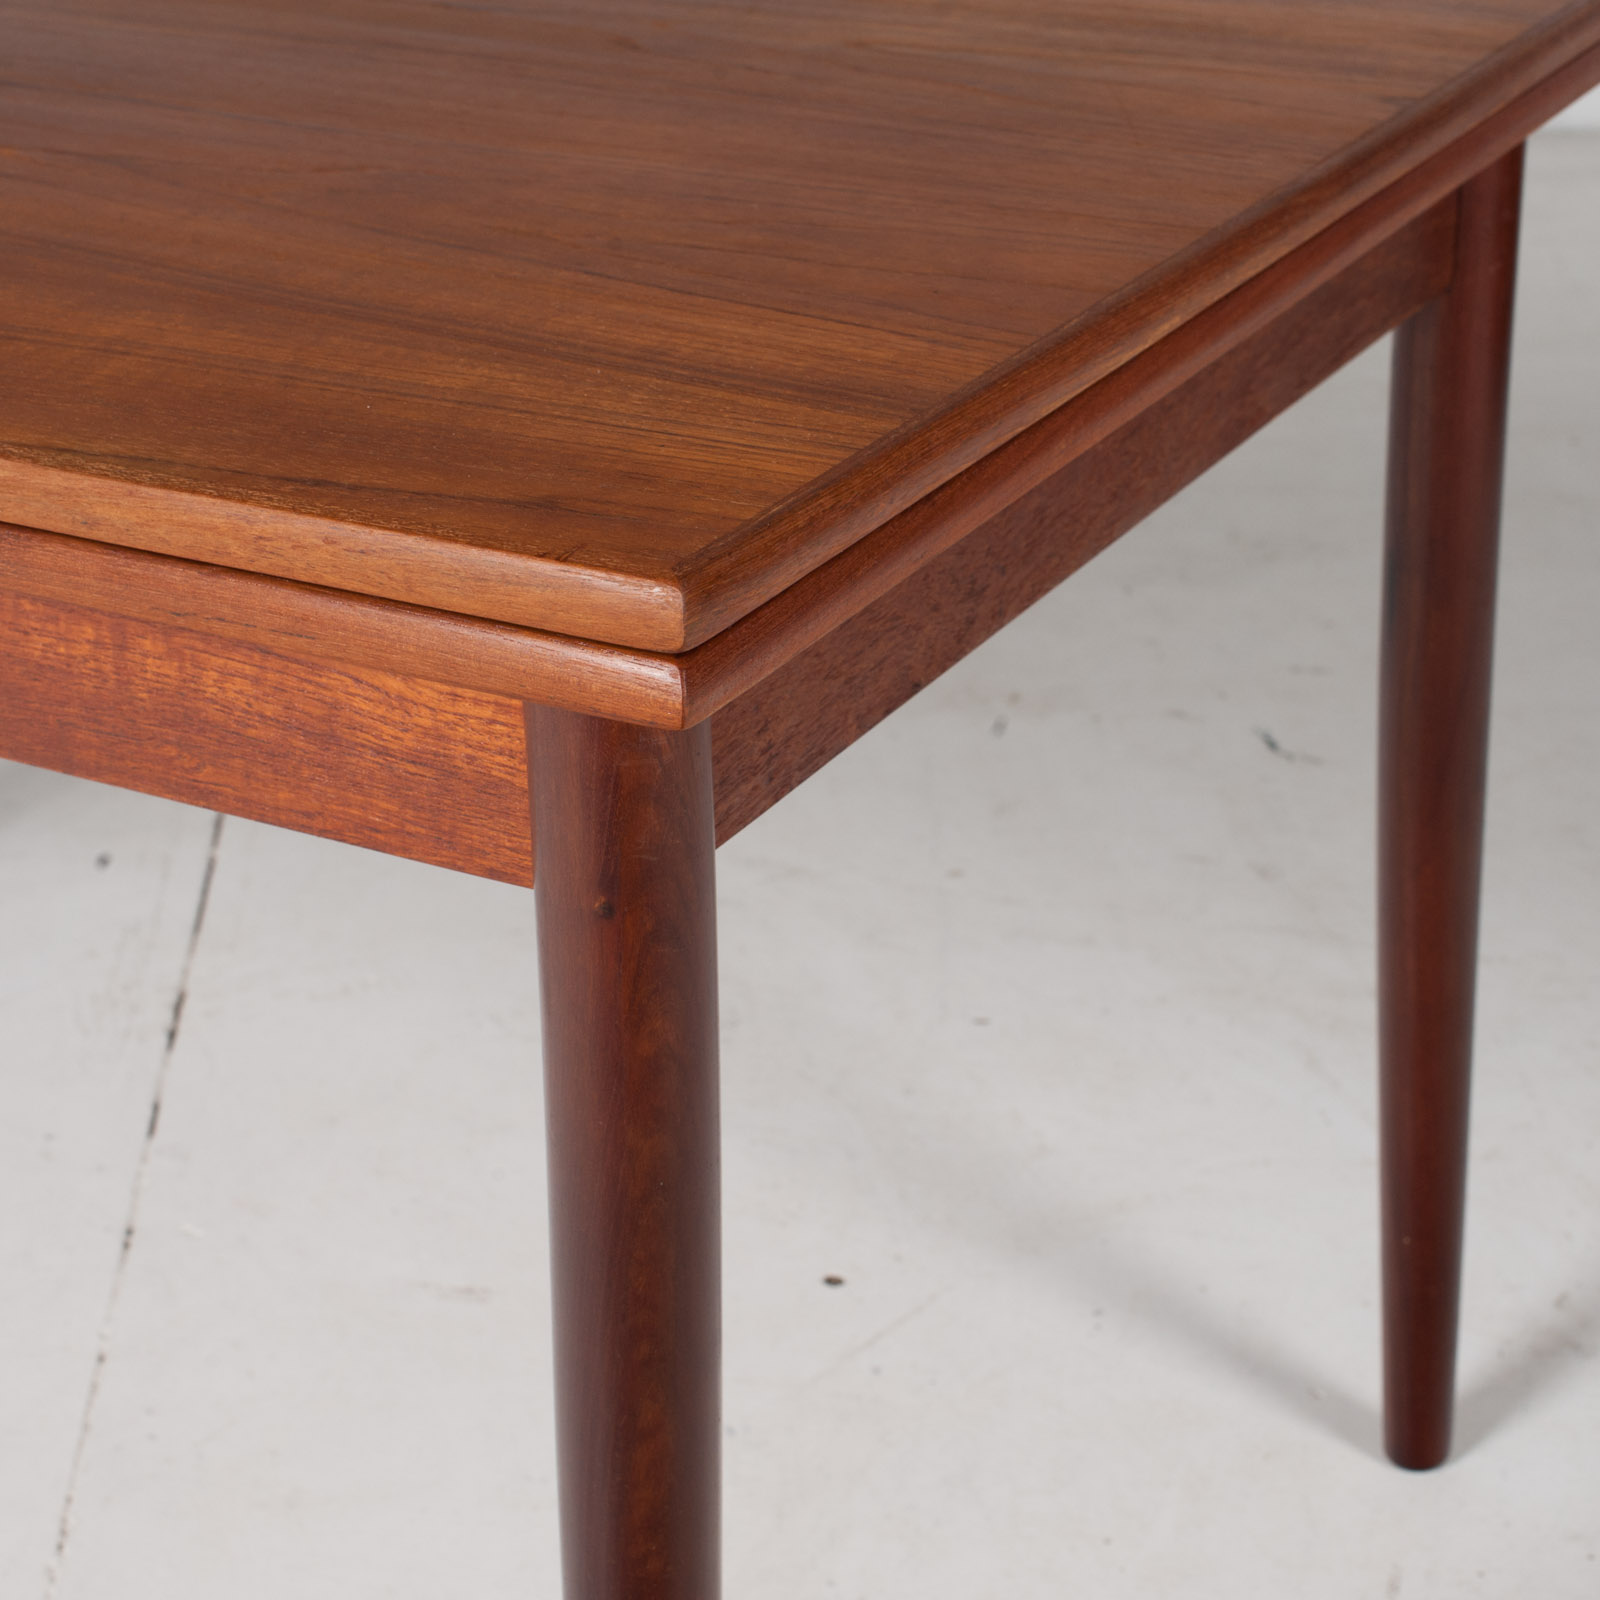 Extendable Rectangular Dining Table In Teak With Solid Edge, 1960s, Denmark6